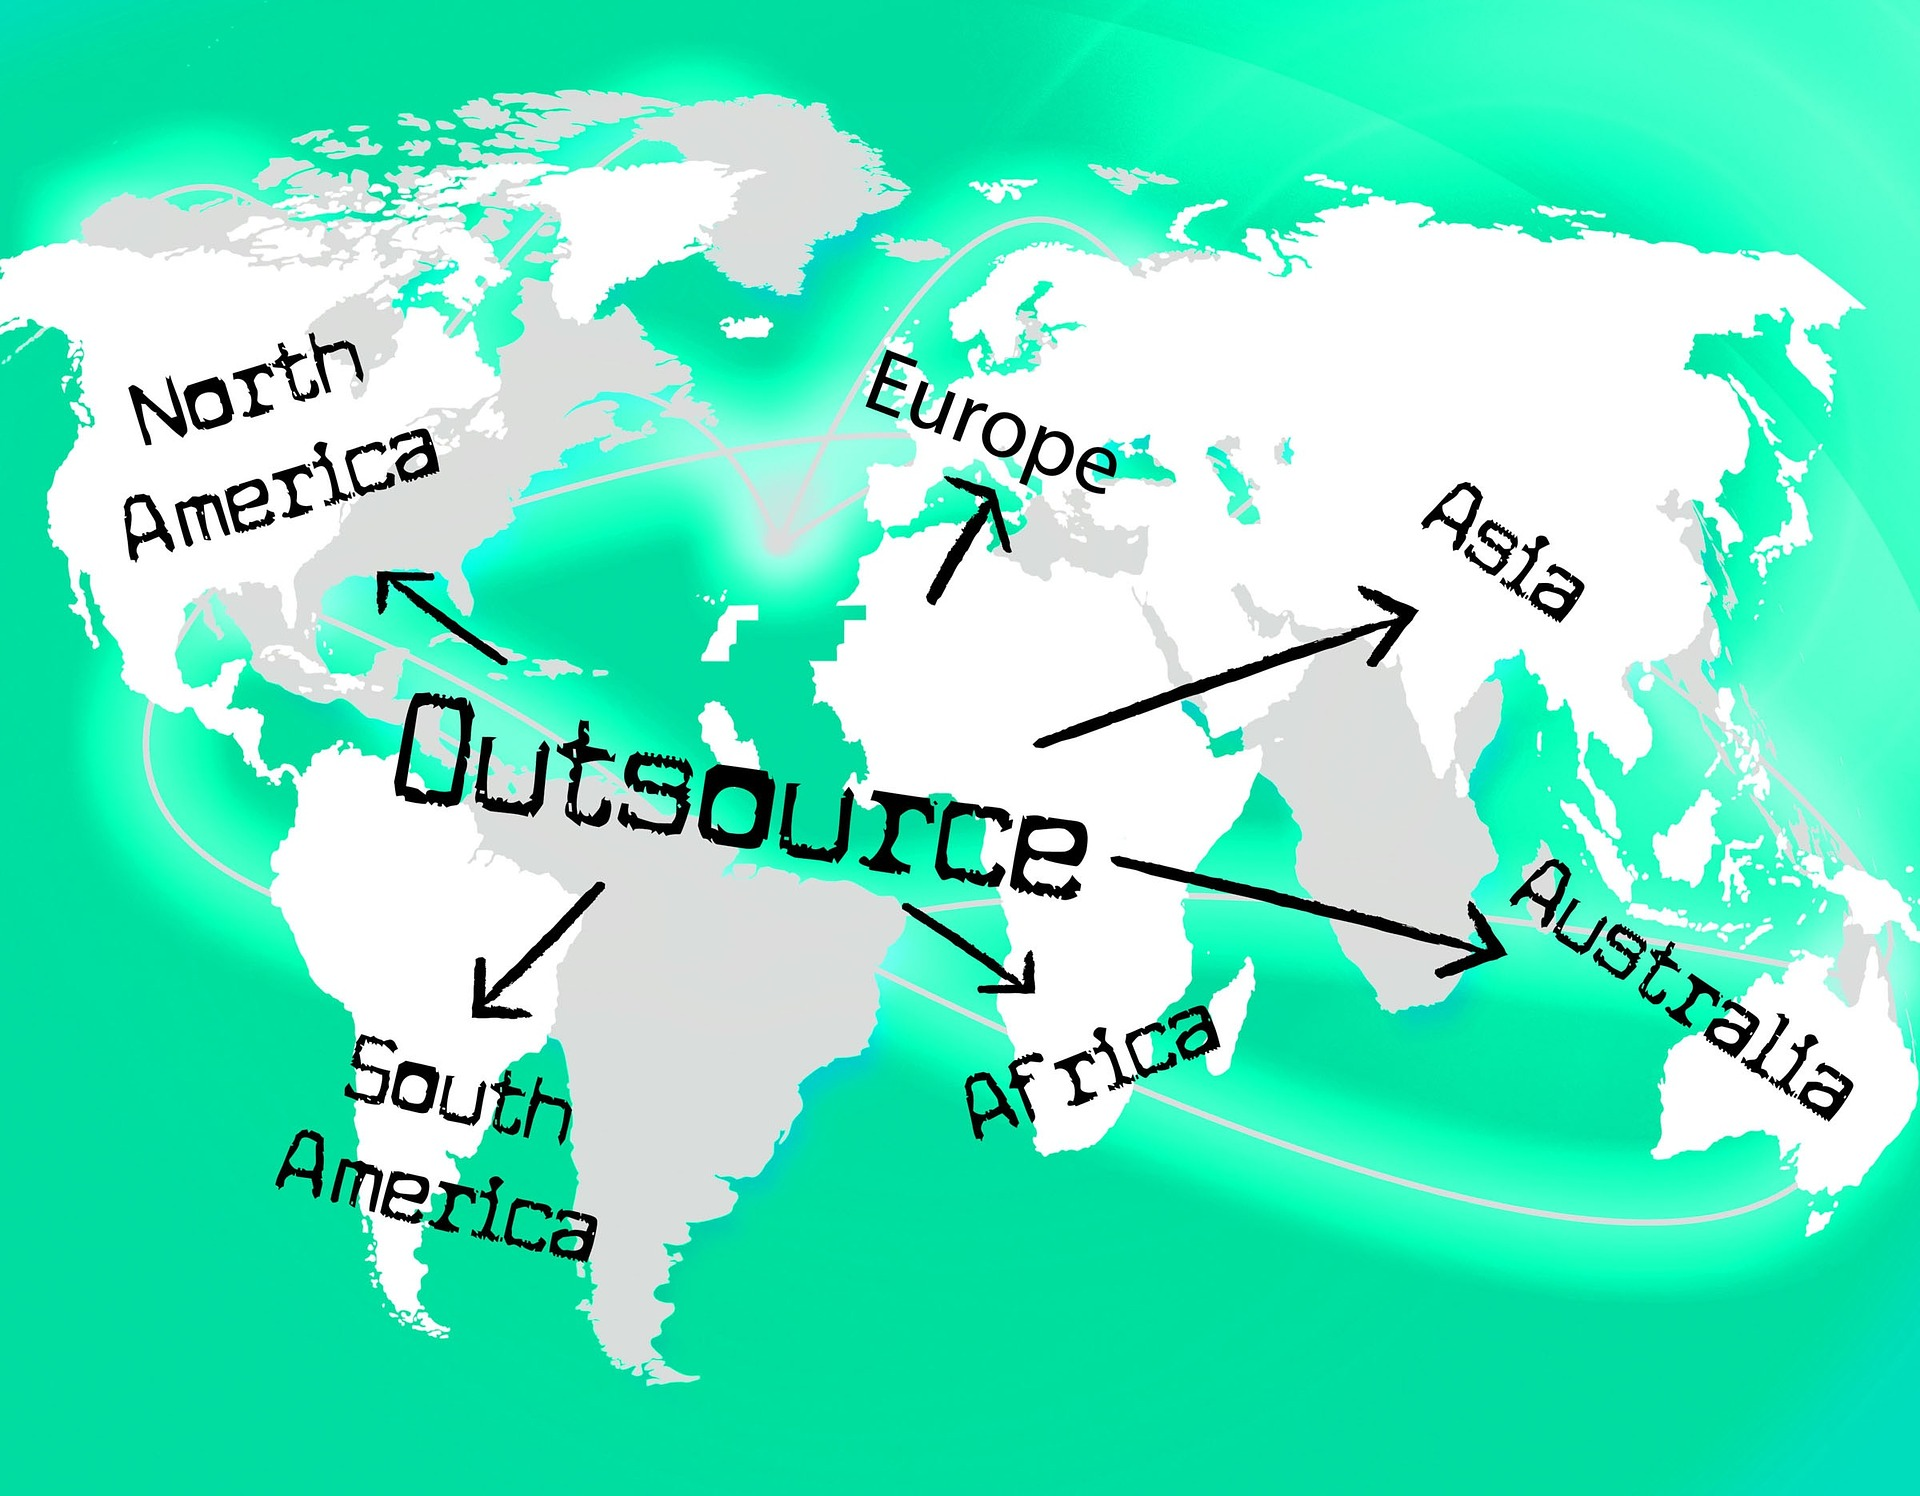 Bangladesh is the best place for outsourcing